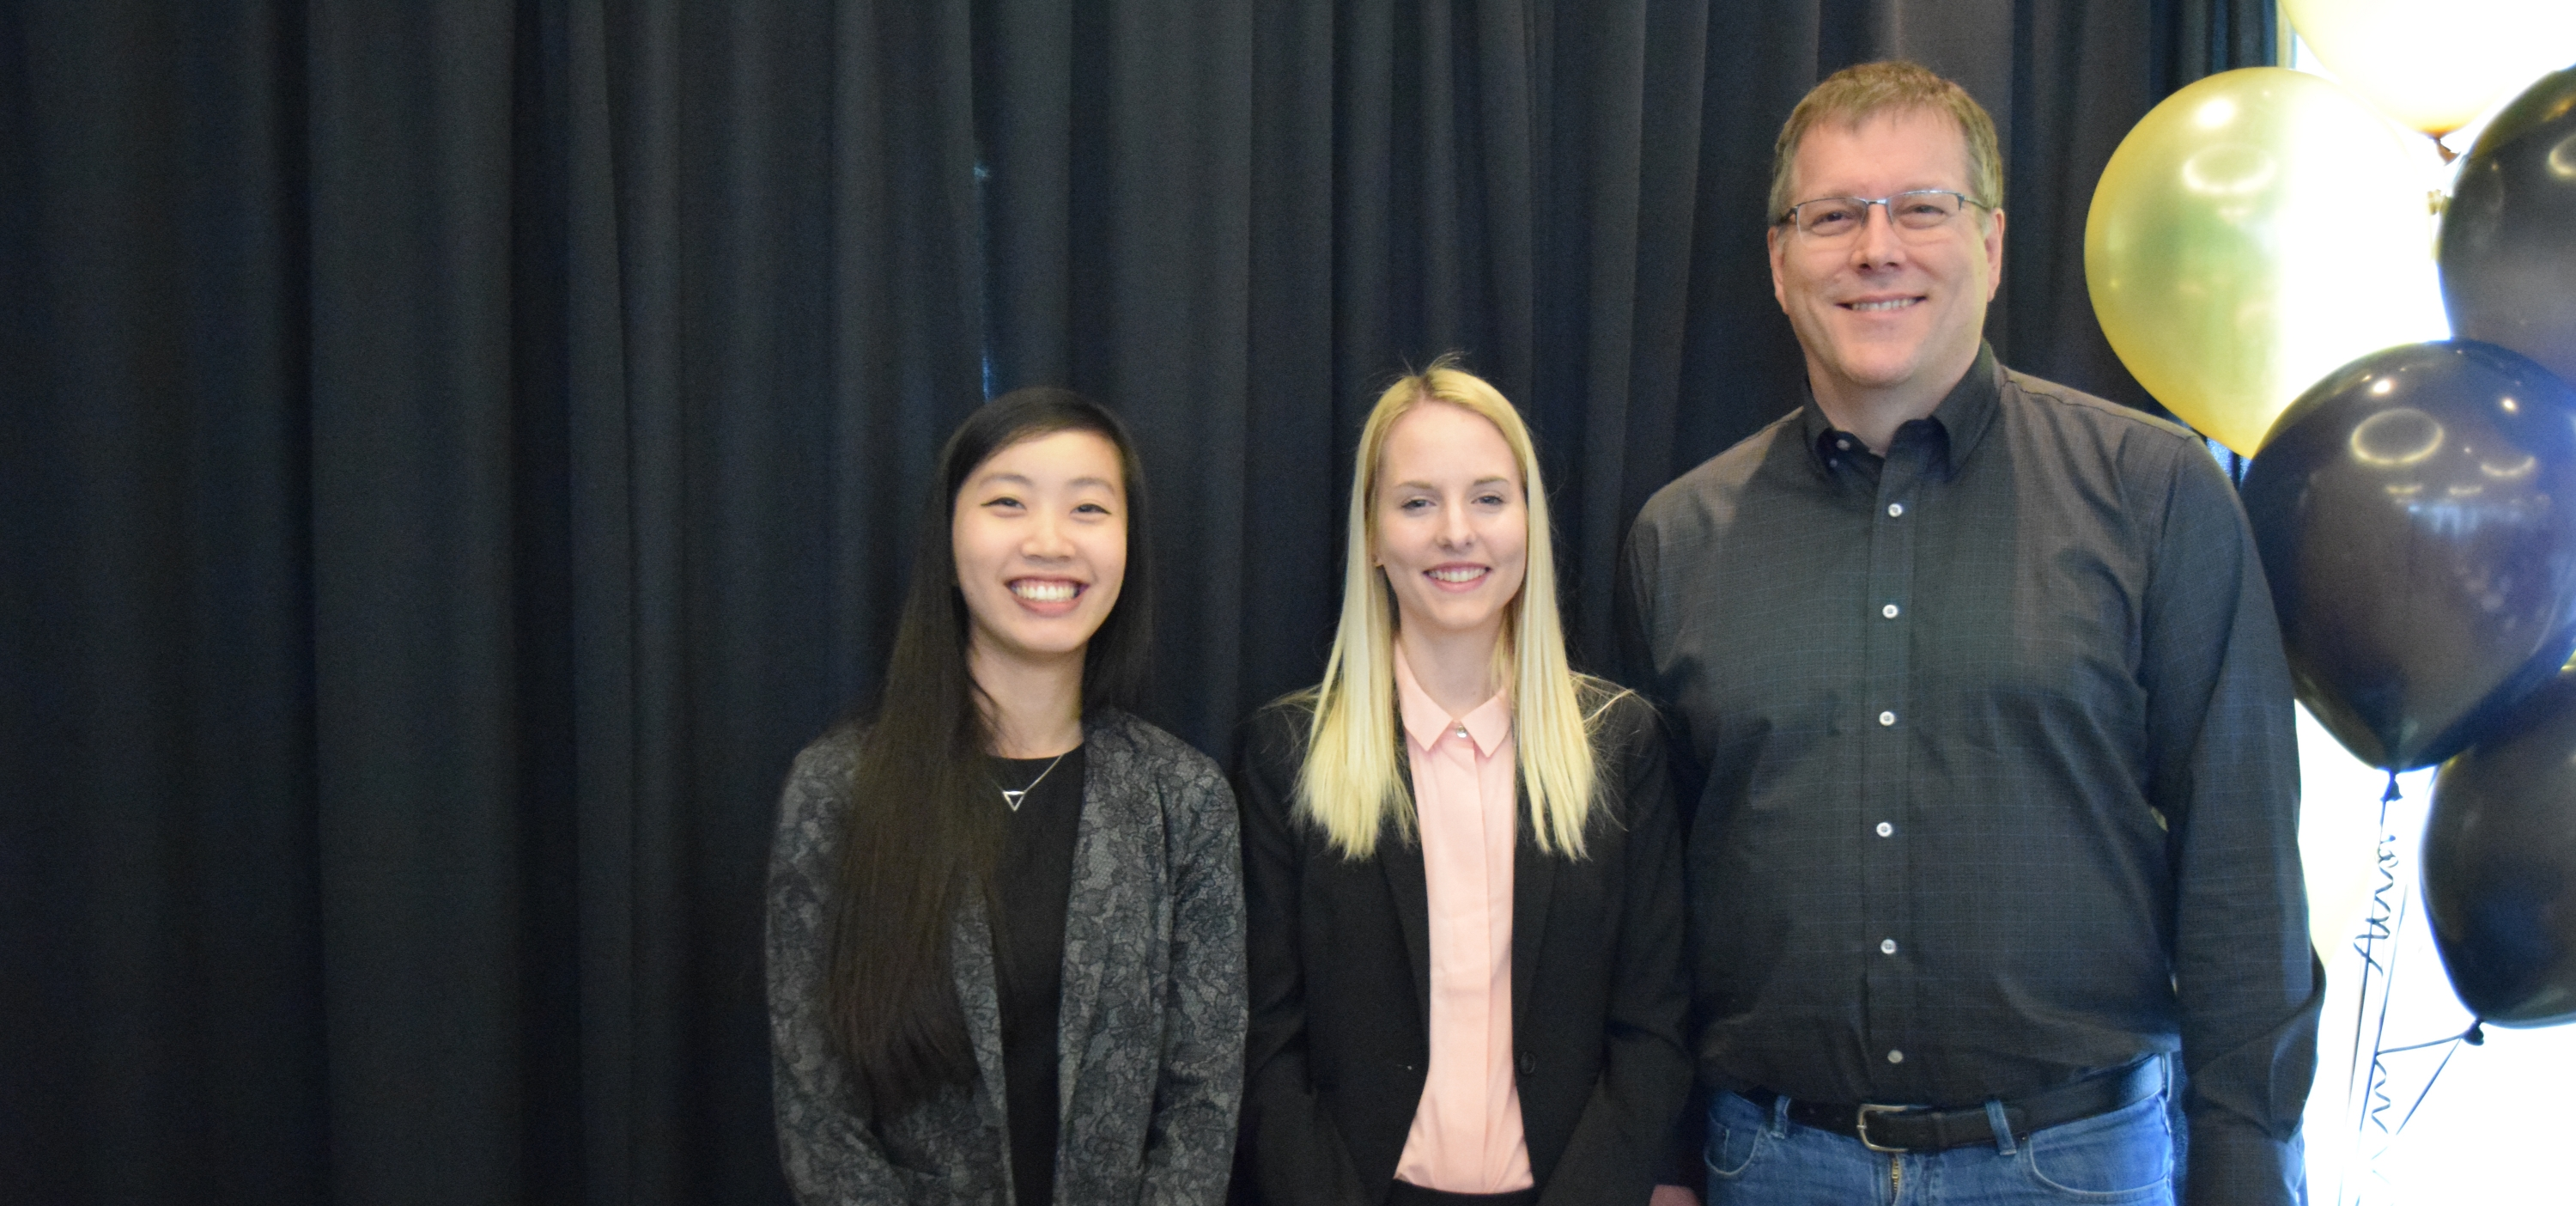 Stephanie Chan, Natalya O'Neill and Associate Dean of Computing and Co-op Education Stefan Idziak.